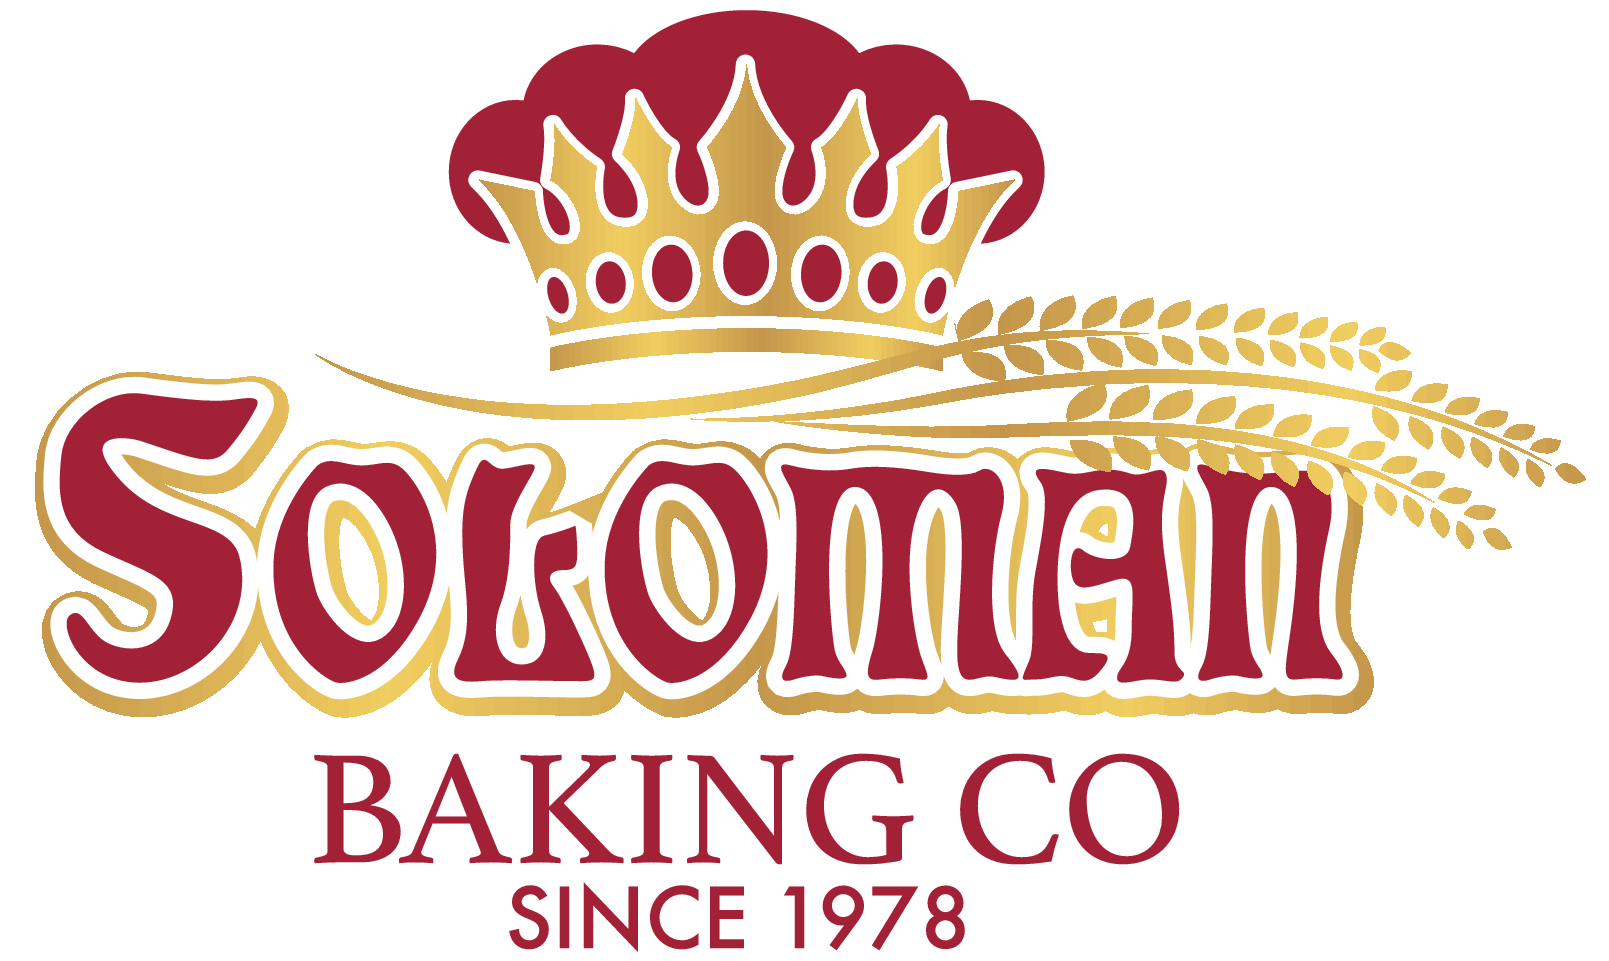 Solomon Baking Company